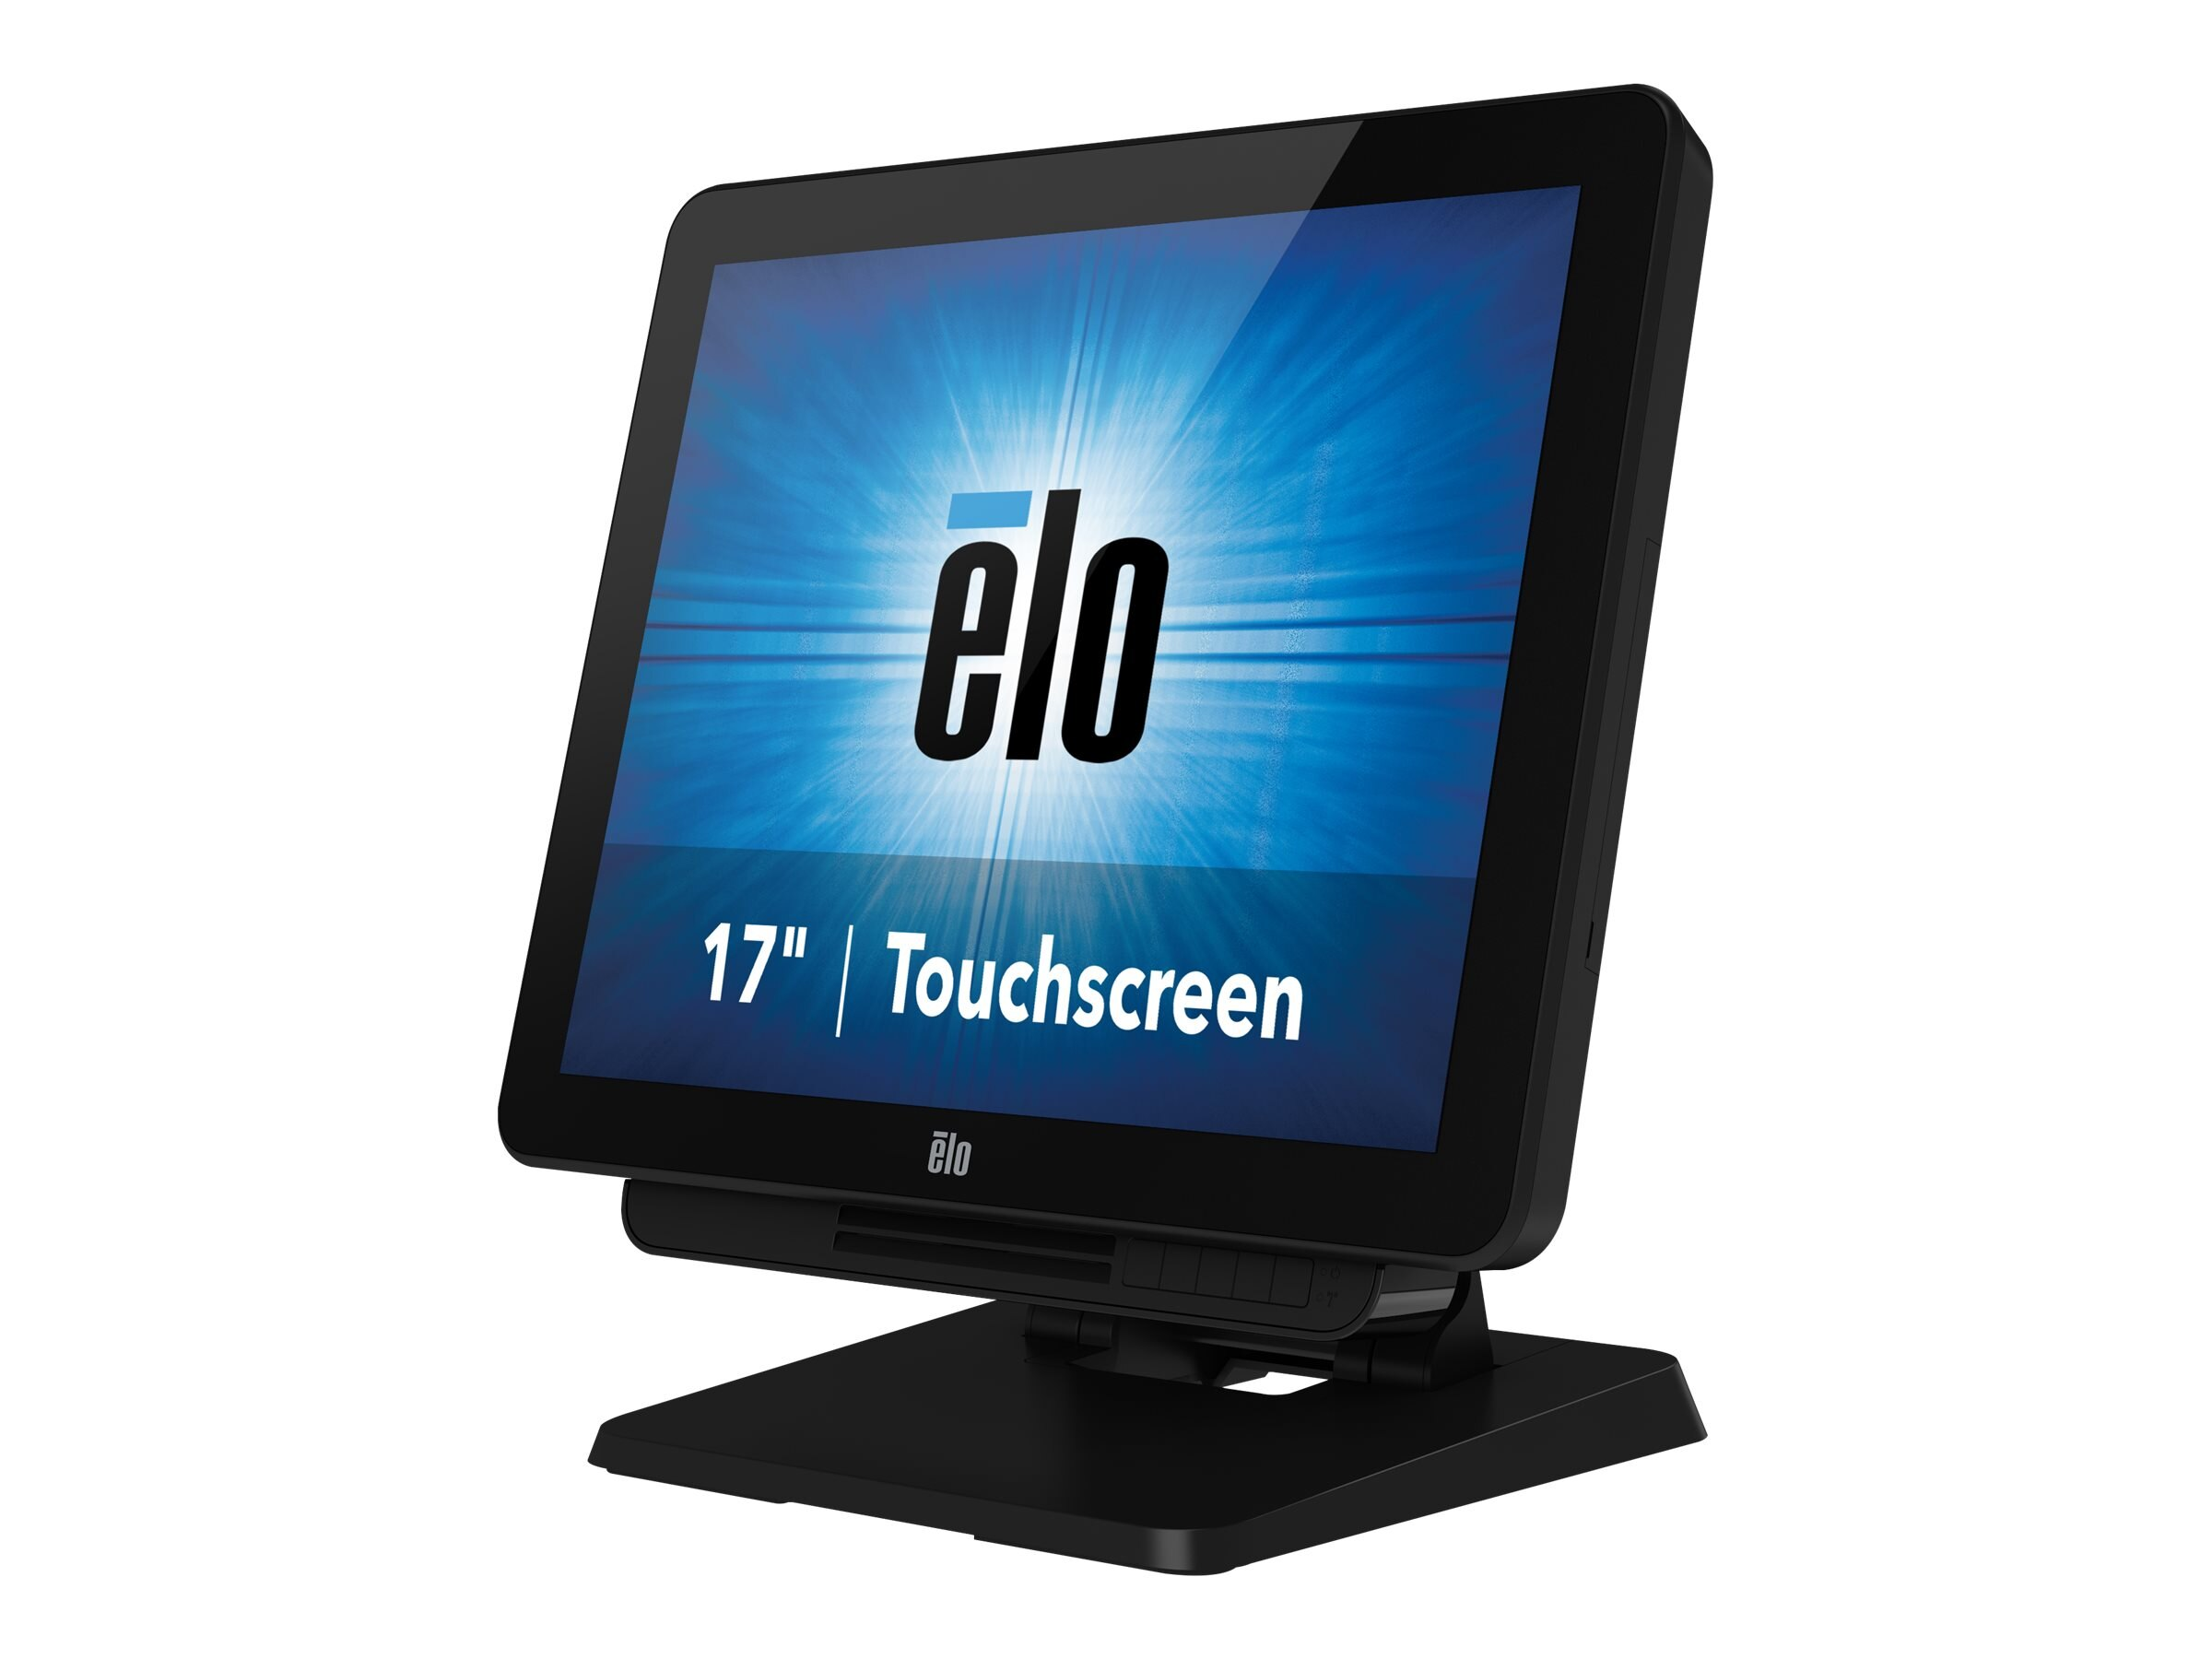 ELO Touch Solutions X5-17 TOUCHCOMPUTER REV A 17IN TERMSTD LED LCD HASWELL FANNED 2.0GHZ